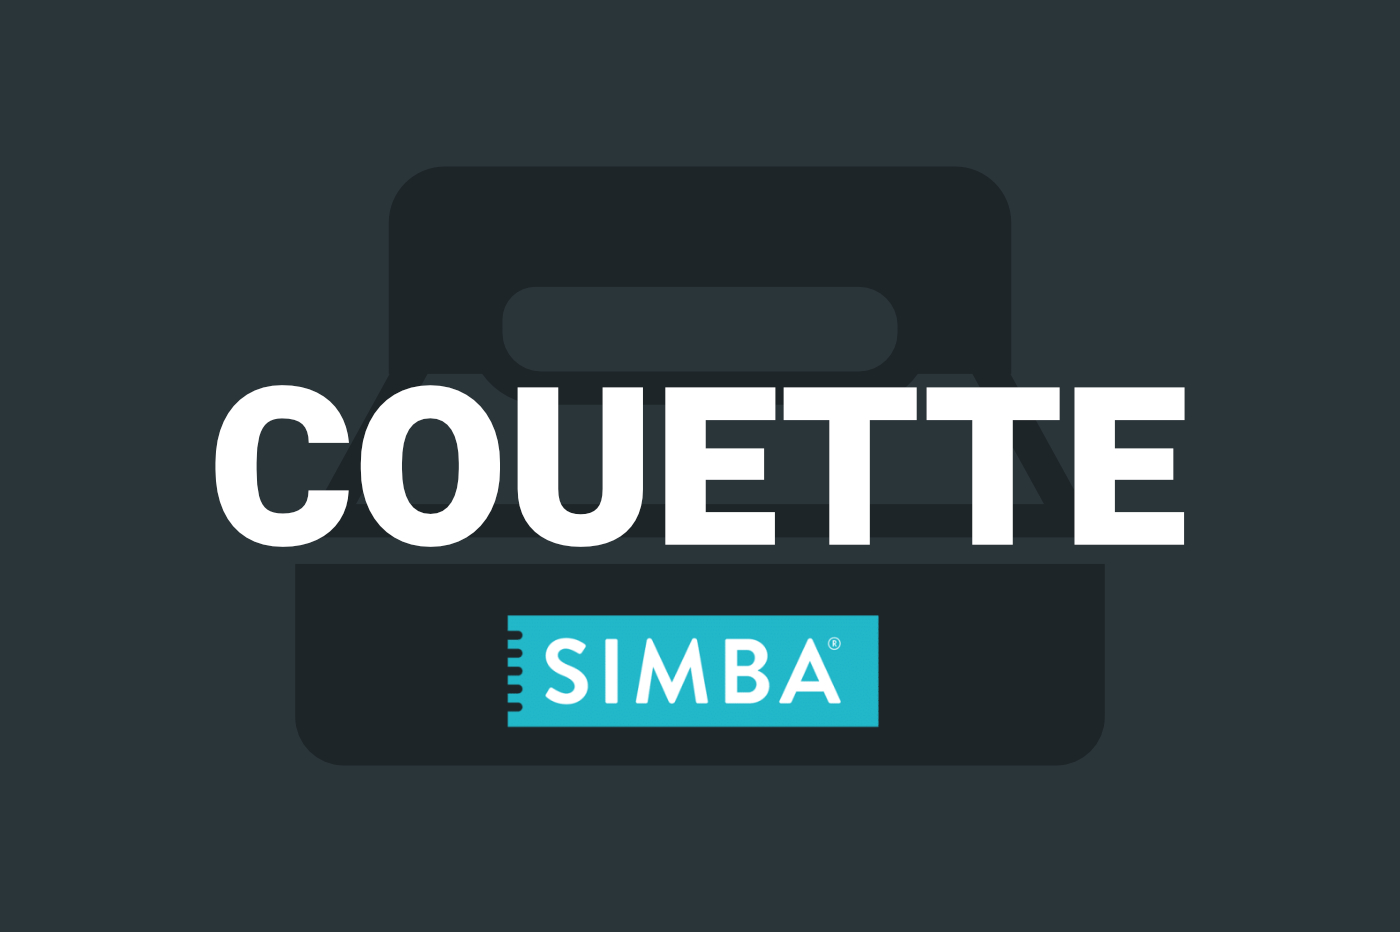 Couette Simba